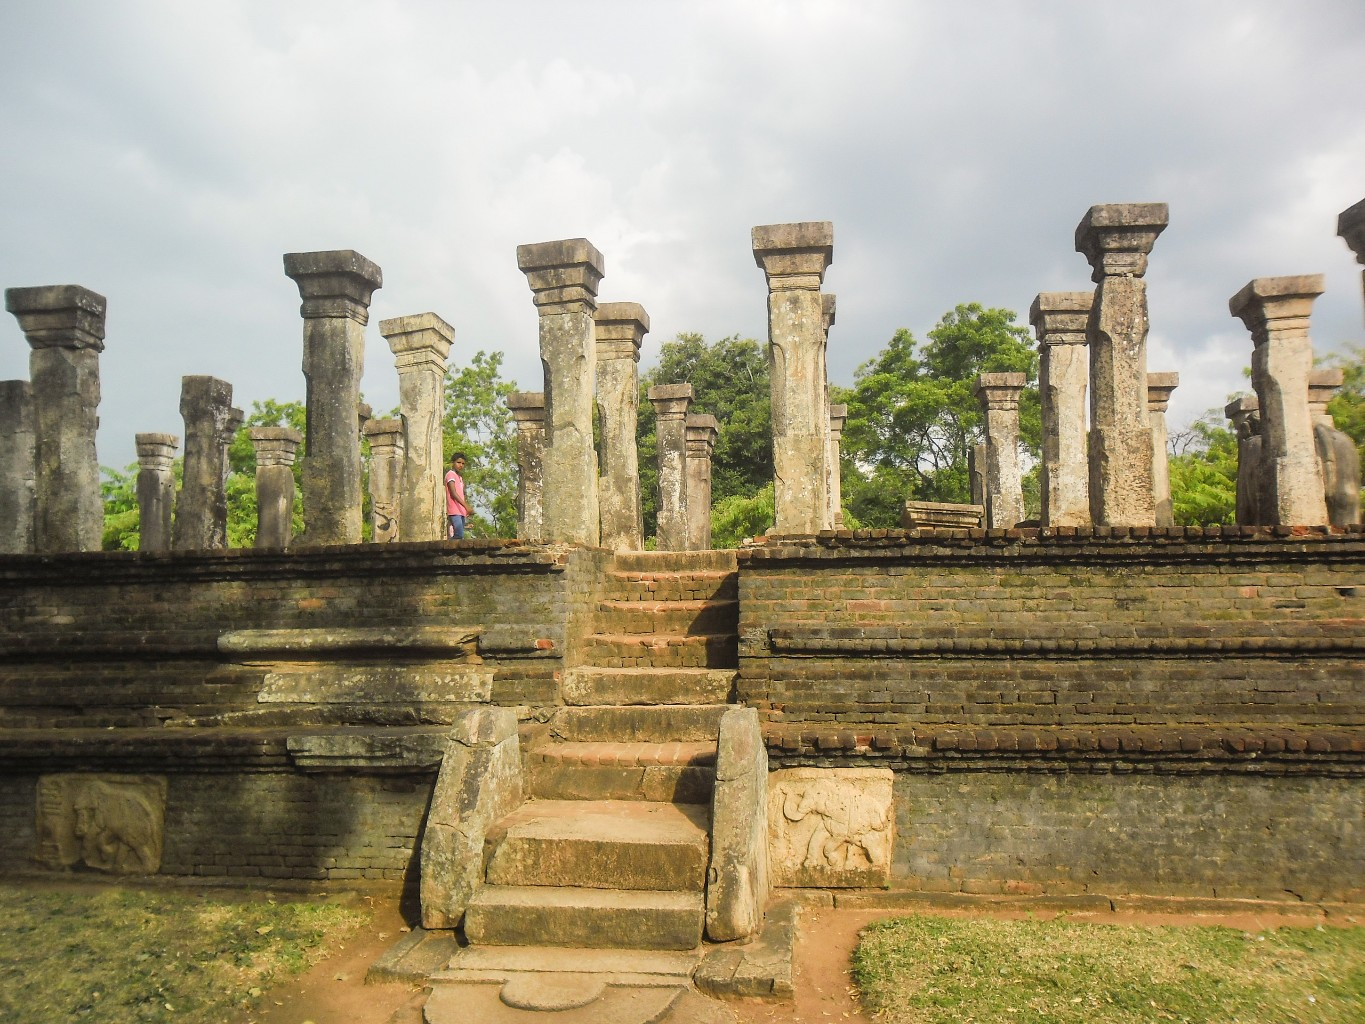 Council-Chamber-of-Nissankamalla-Ancient-City-of-Polonnaruwa-4